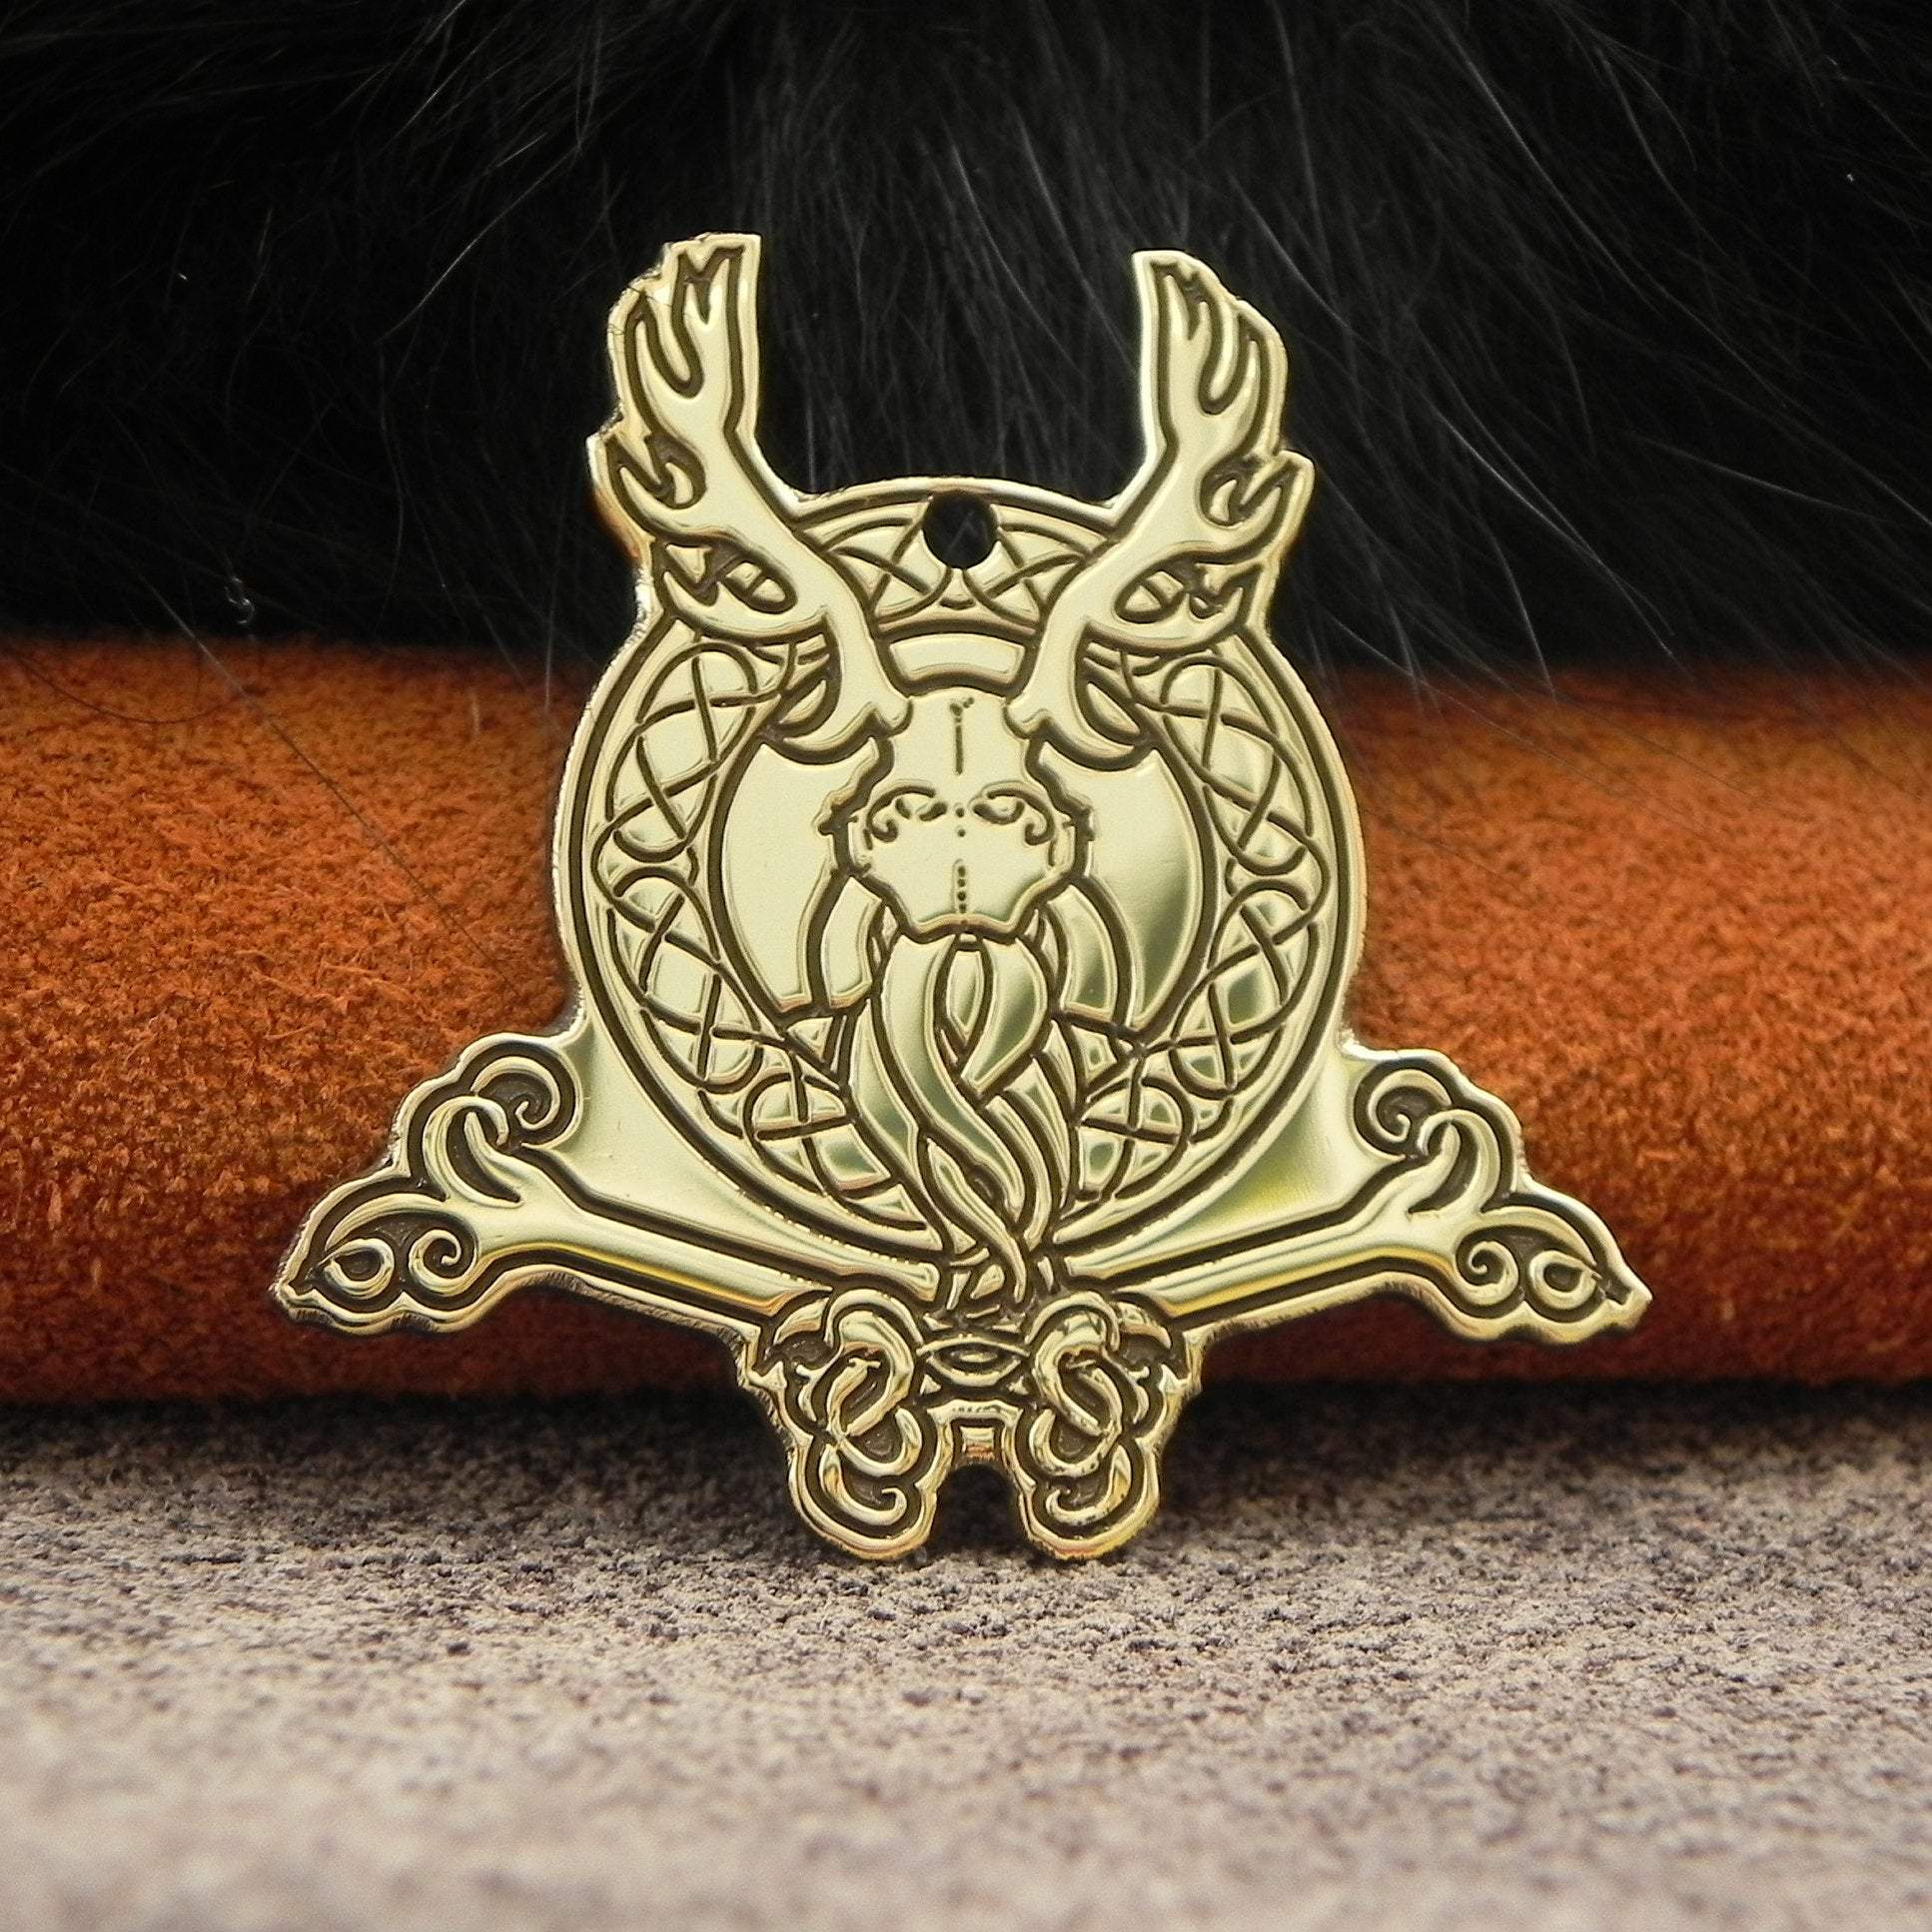 Celtic Deer Druid Symbol Animal Totem Ancient Treasures Ancientreasures Viking Odin Thor Mjolnir Celtic Ancient Egypt Norse Norse Mythology